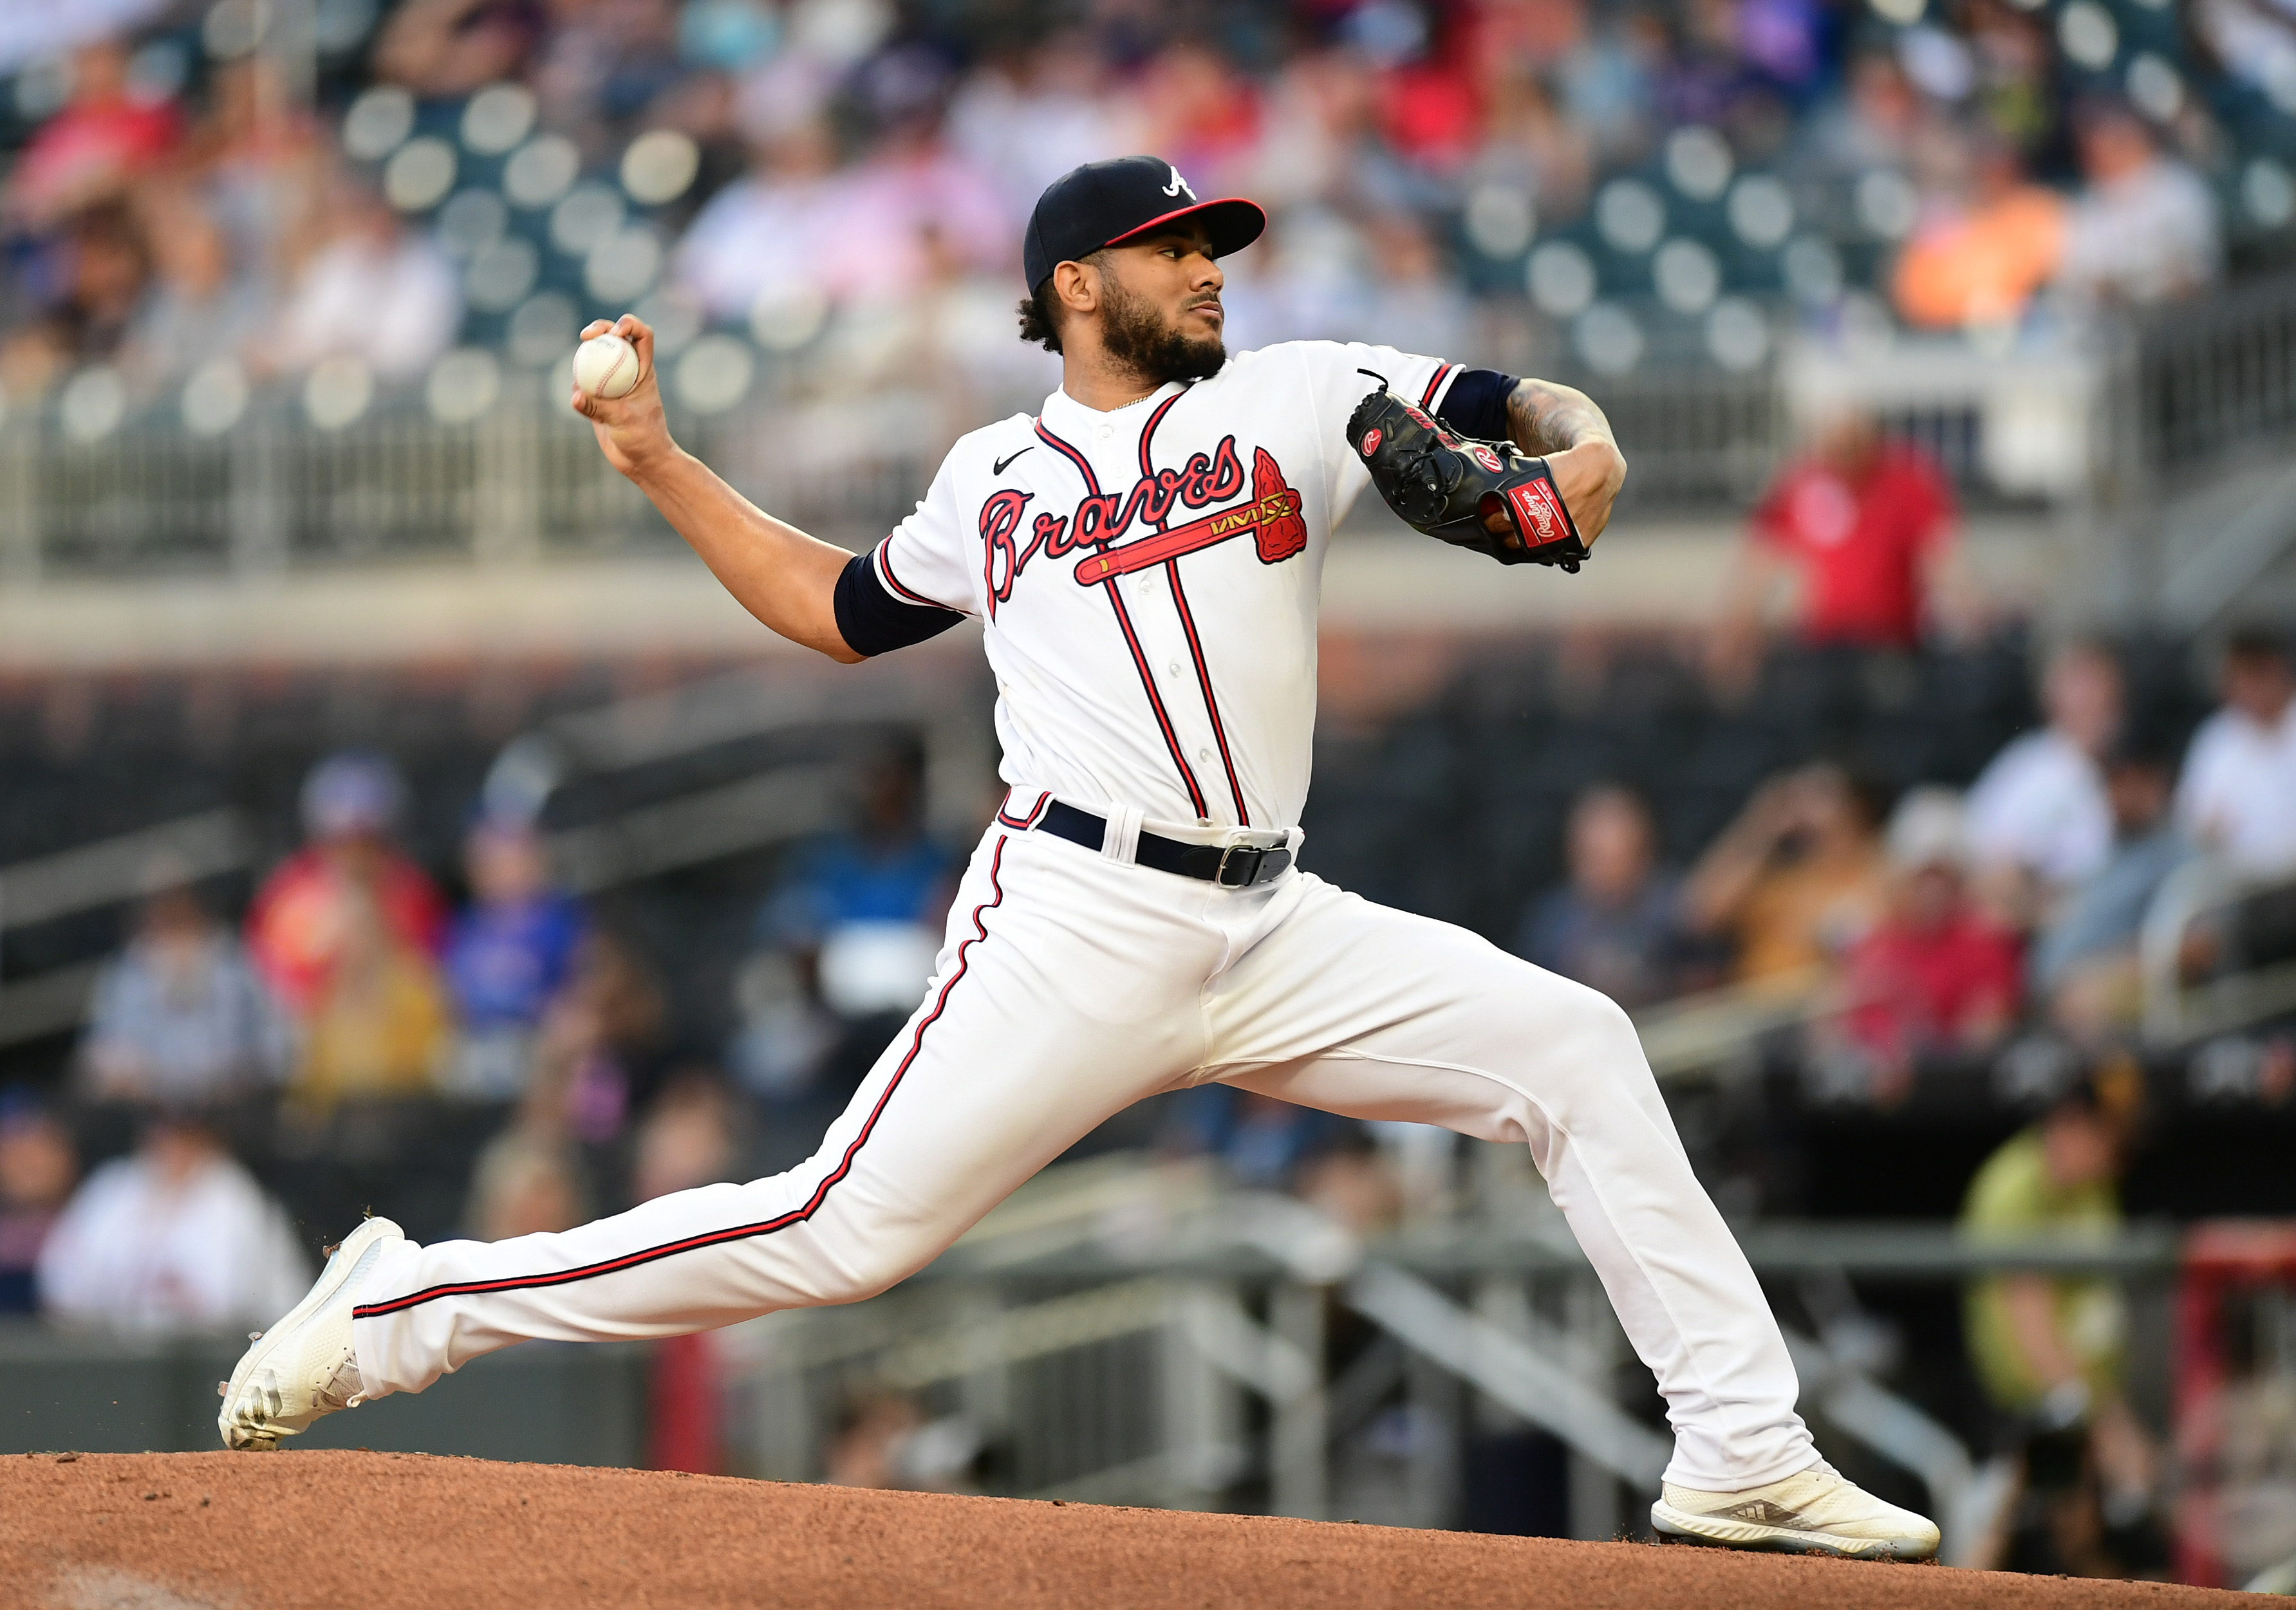 Huascar Ynoa #19 of the Atlanta Braves pitches against the Washington Nationals during the 1st inning at Truist Park on September 9, 2021 in Atlanta, Georgia.